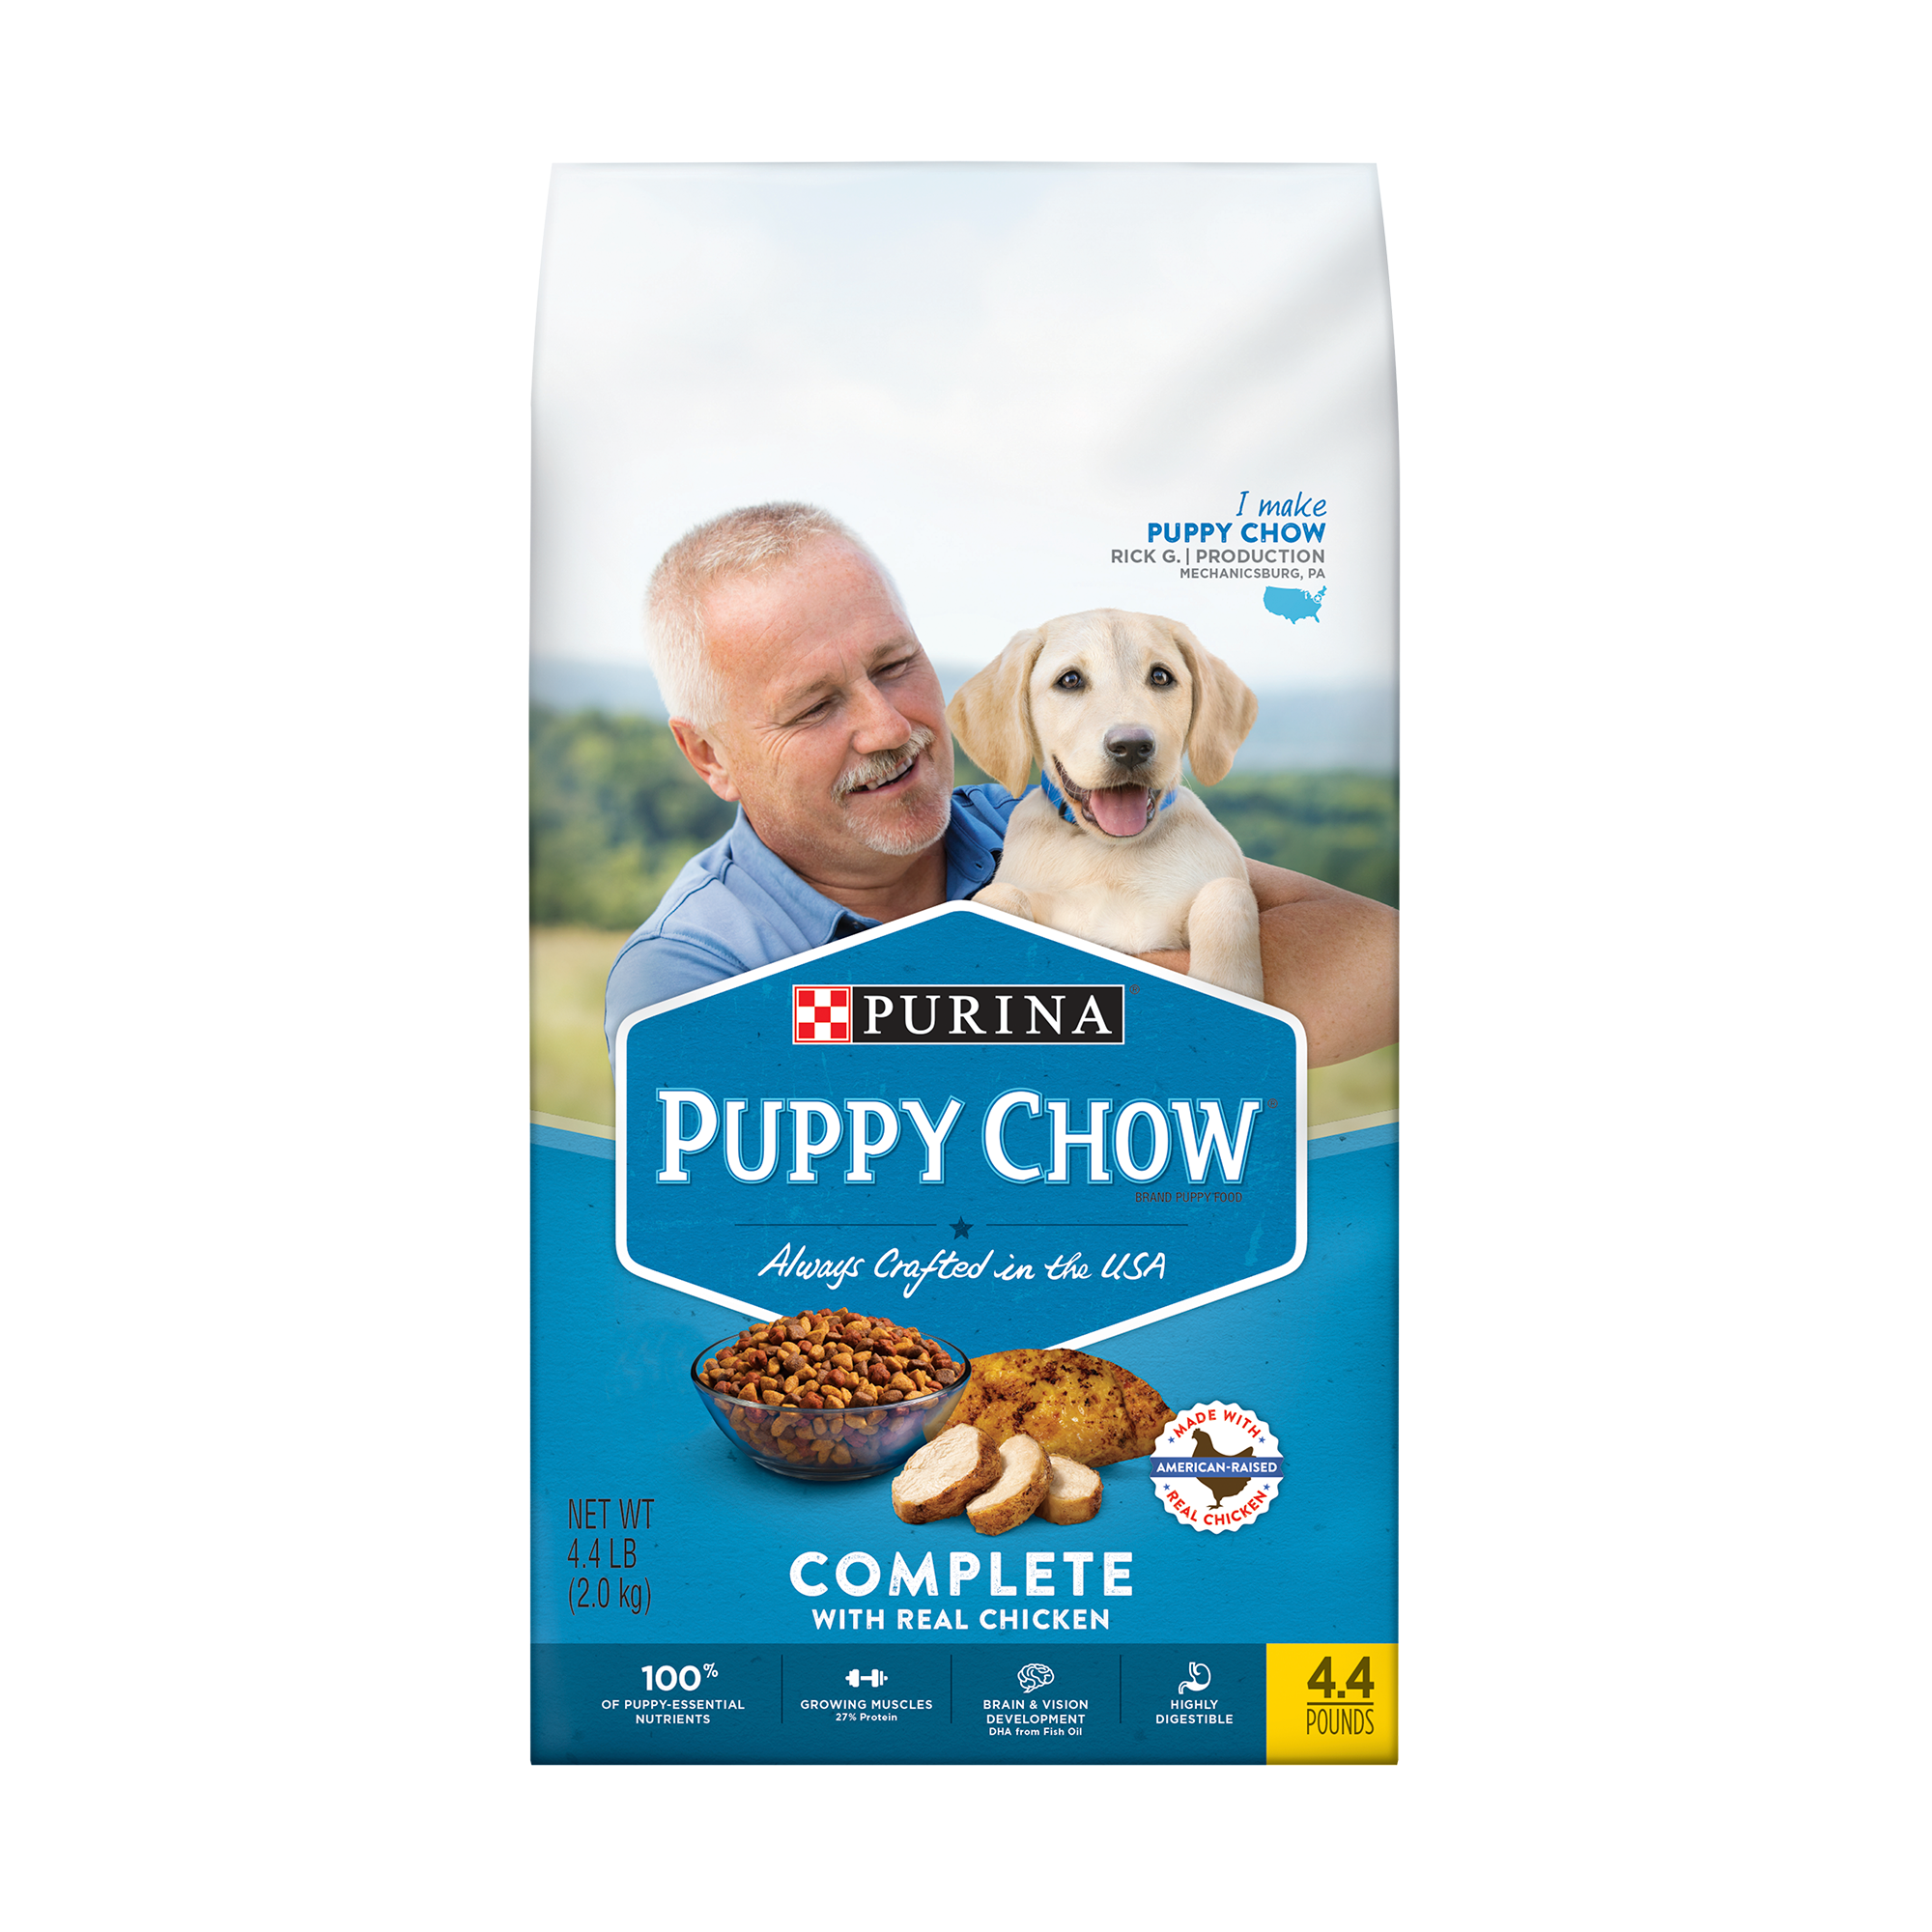 Purina Puppy Chow Complete With Real Chicken Dry Puppy Food - 4.4 lb. Bag